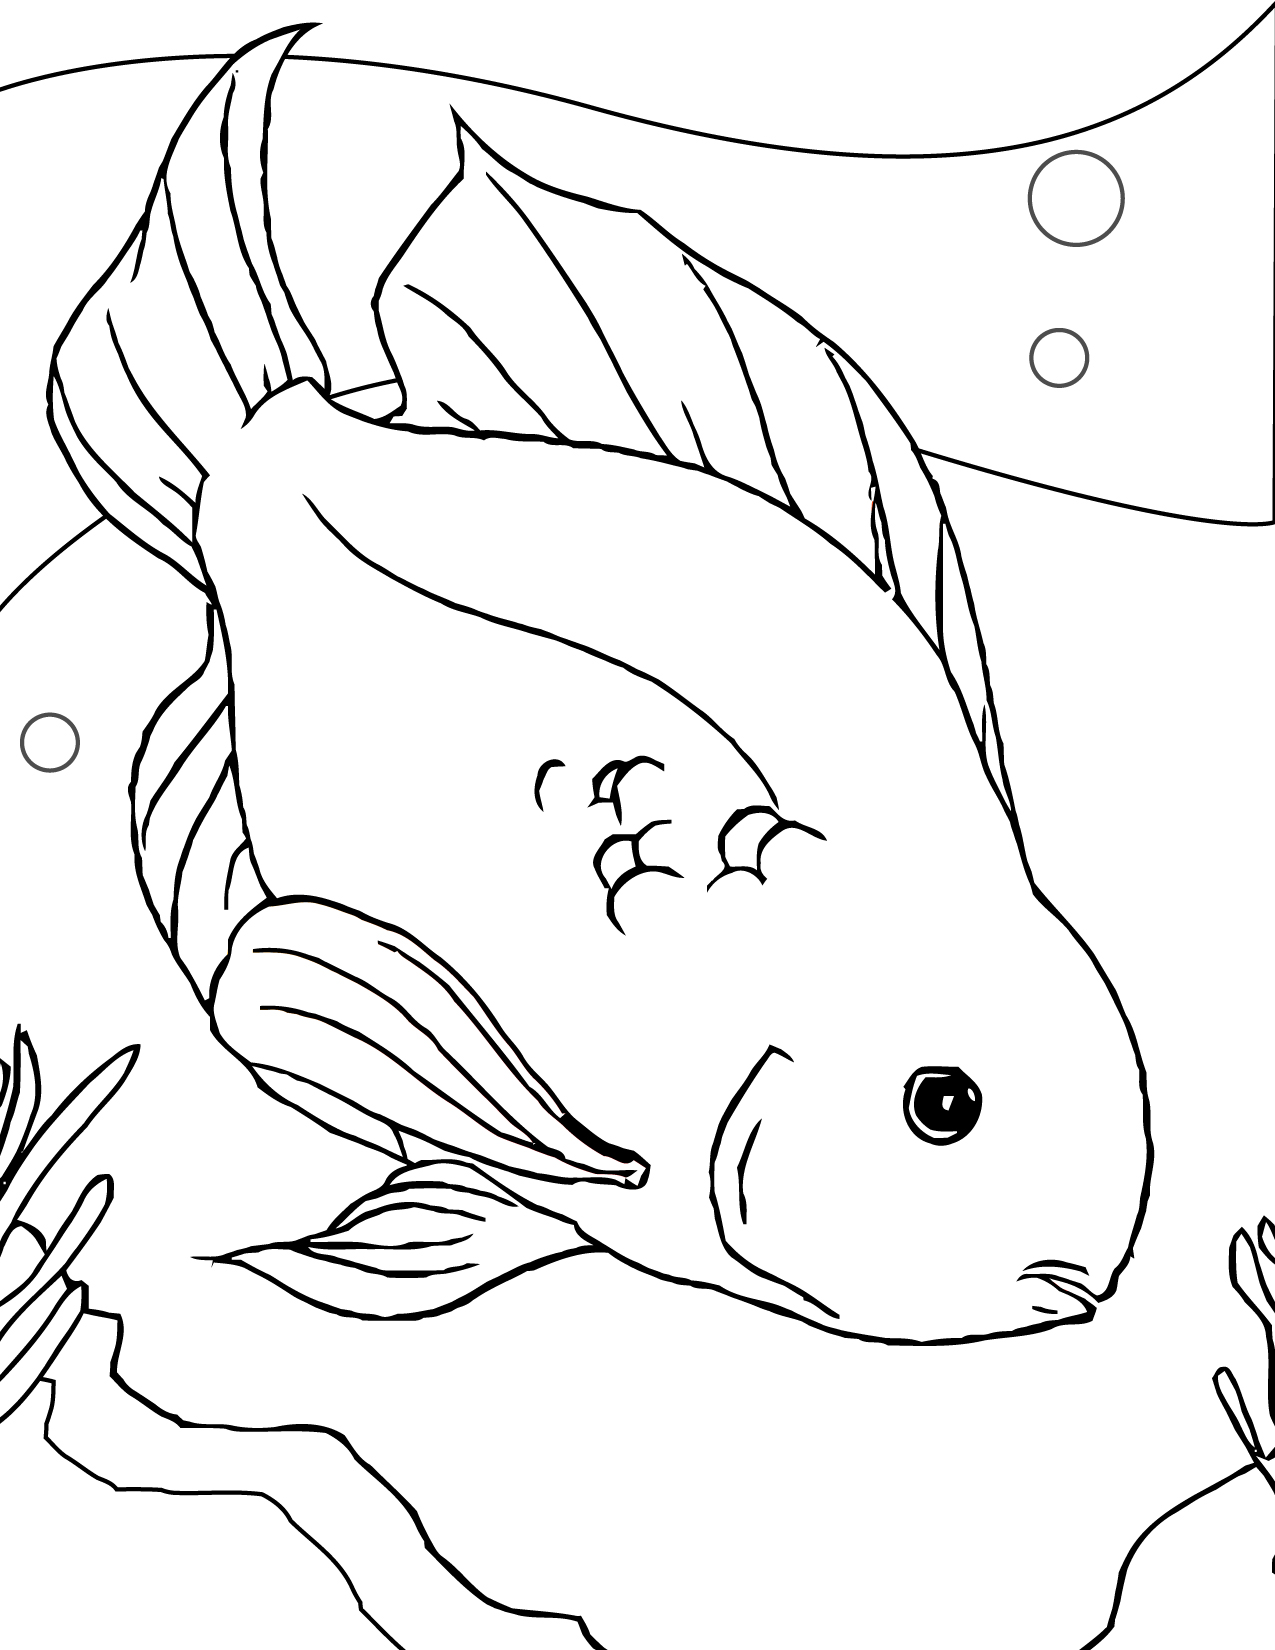 1275x1650 Unparalleled Fish Picture To Color Free Coloring Pages Rainbow